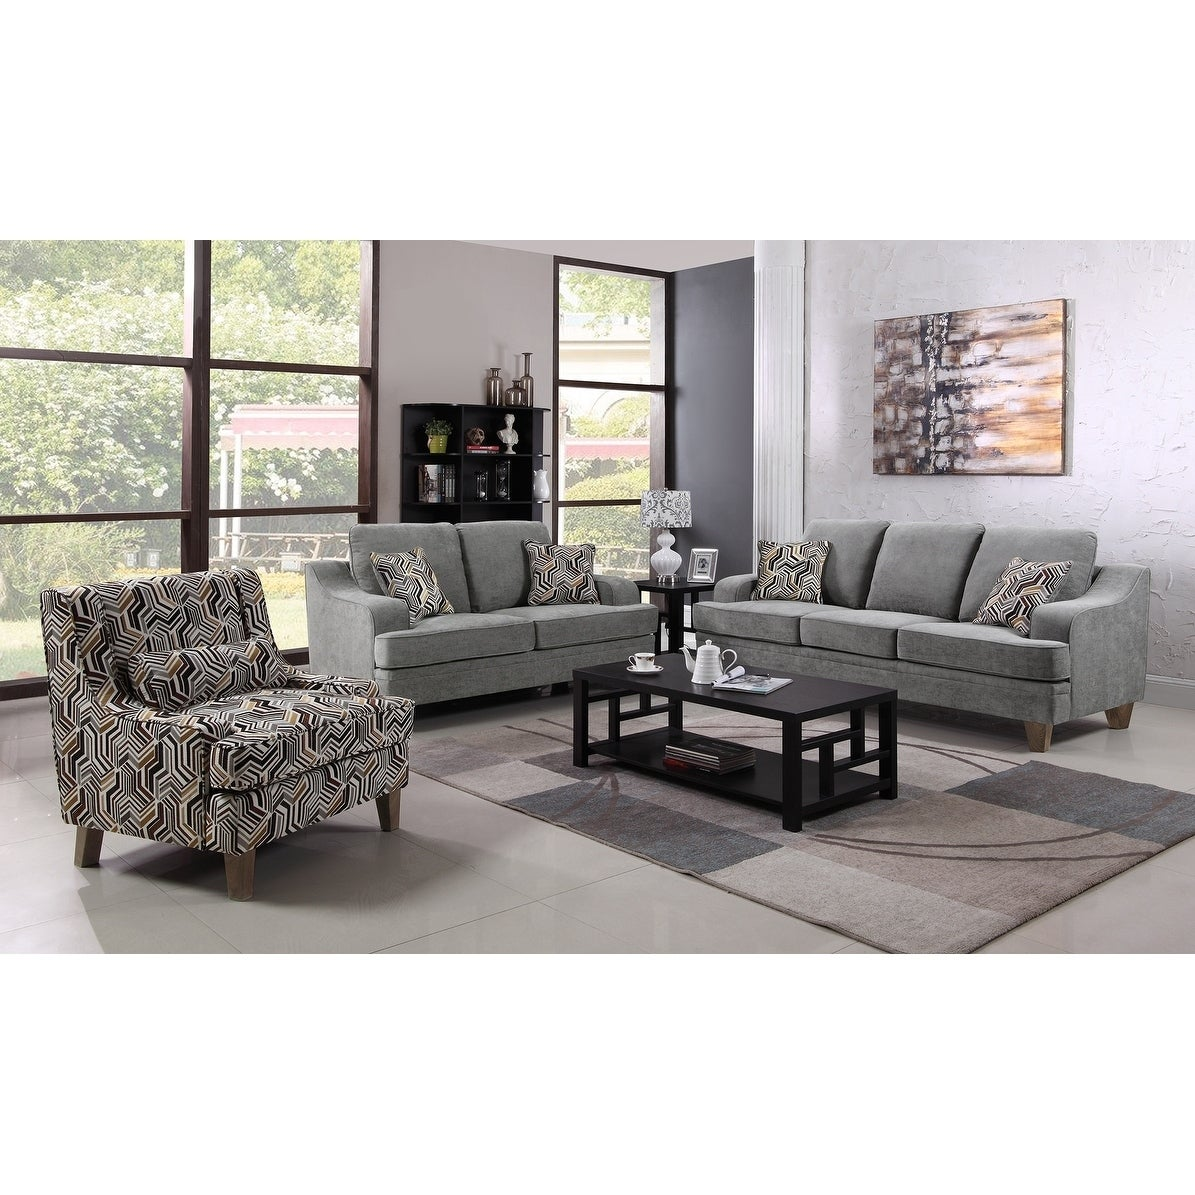 Top Living Room Chairs Burbank